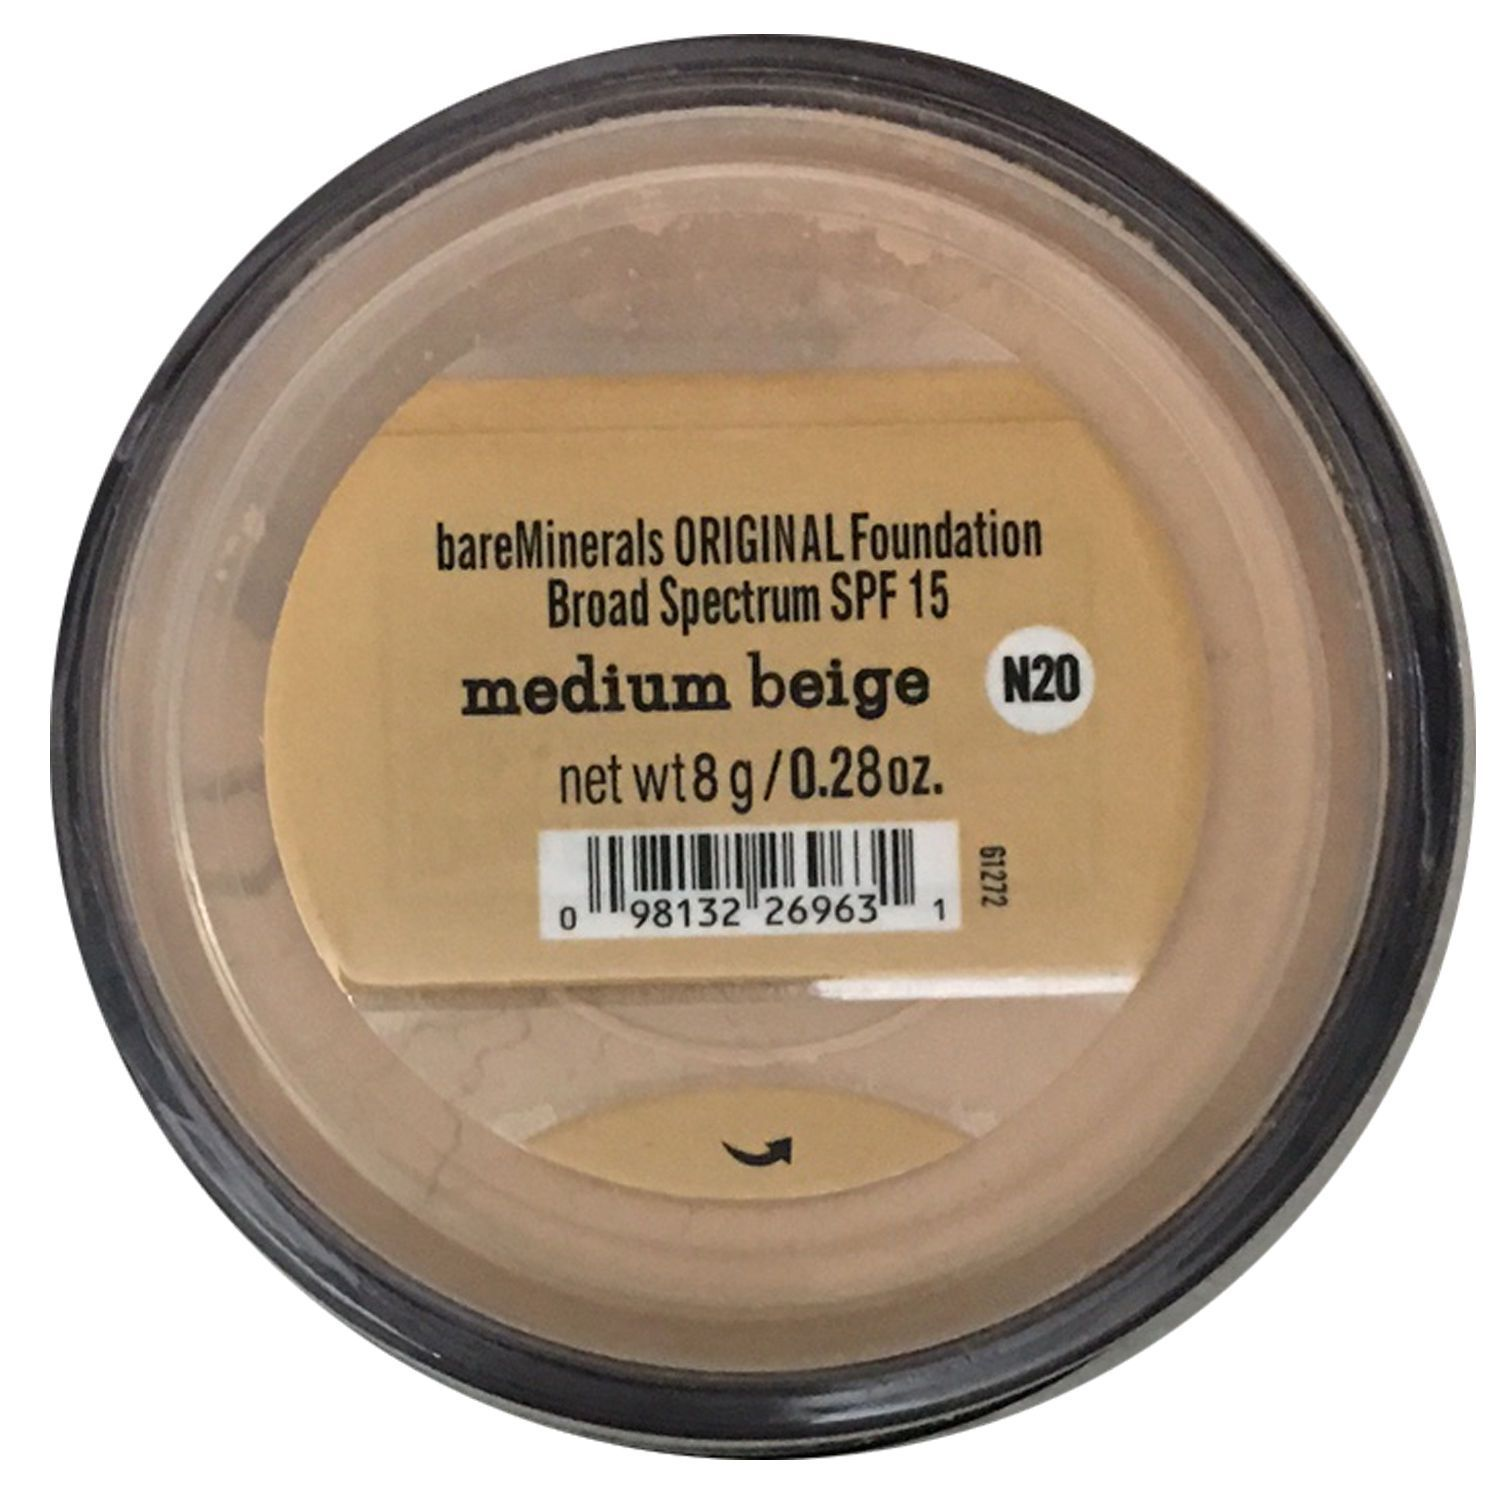 bare minerals foundation medium beige 8g